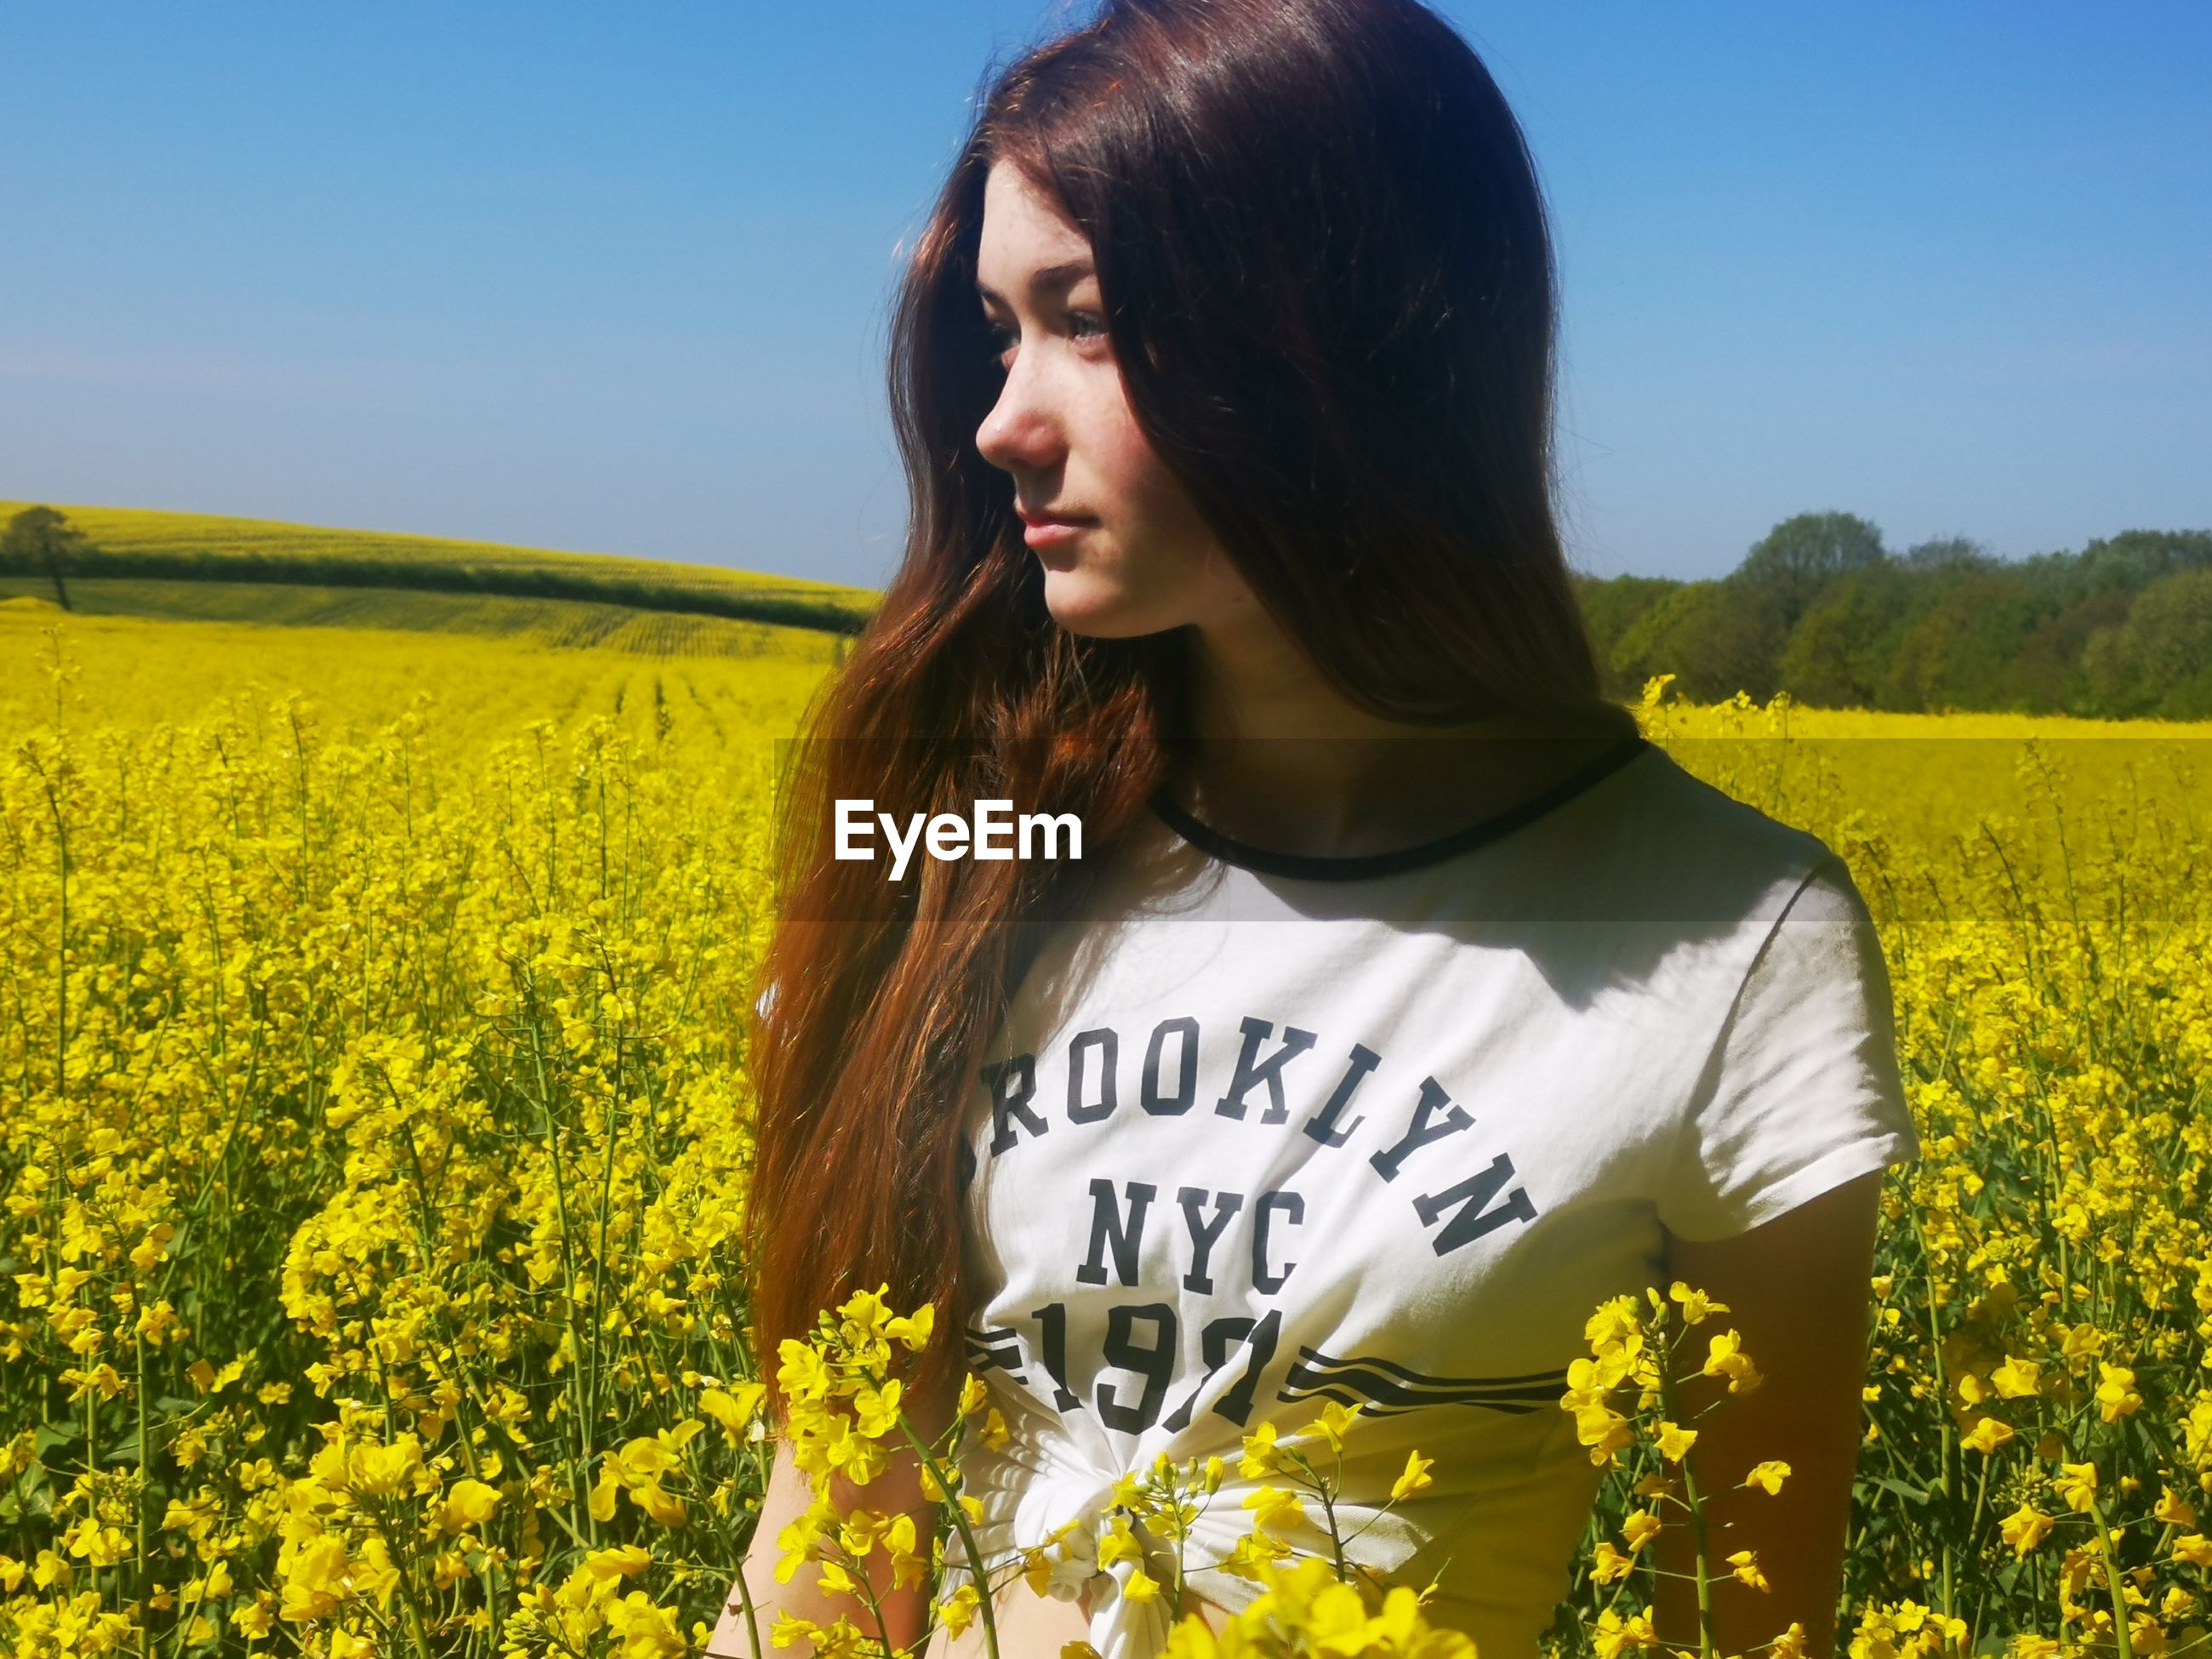 YOUNG WOMAN STANDING BY YELLOW FLOWER FIELD